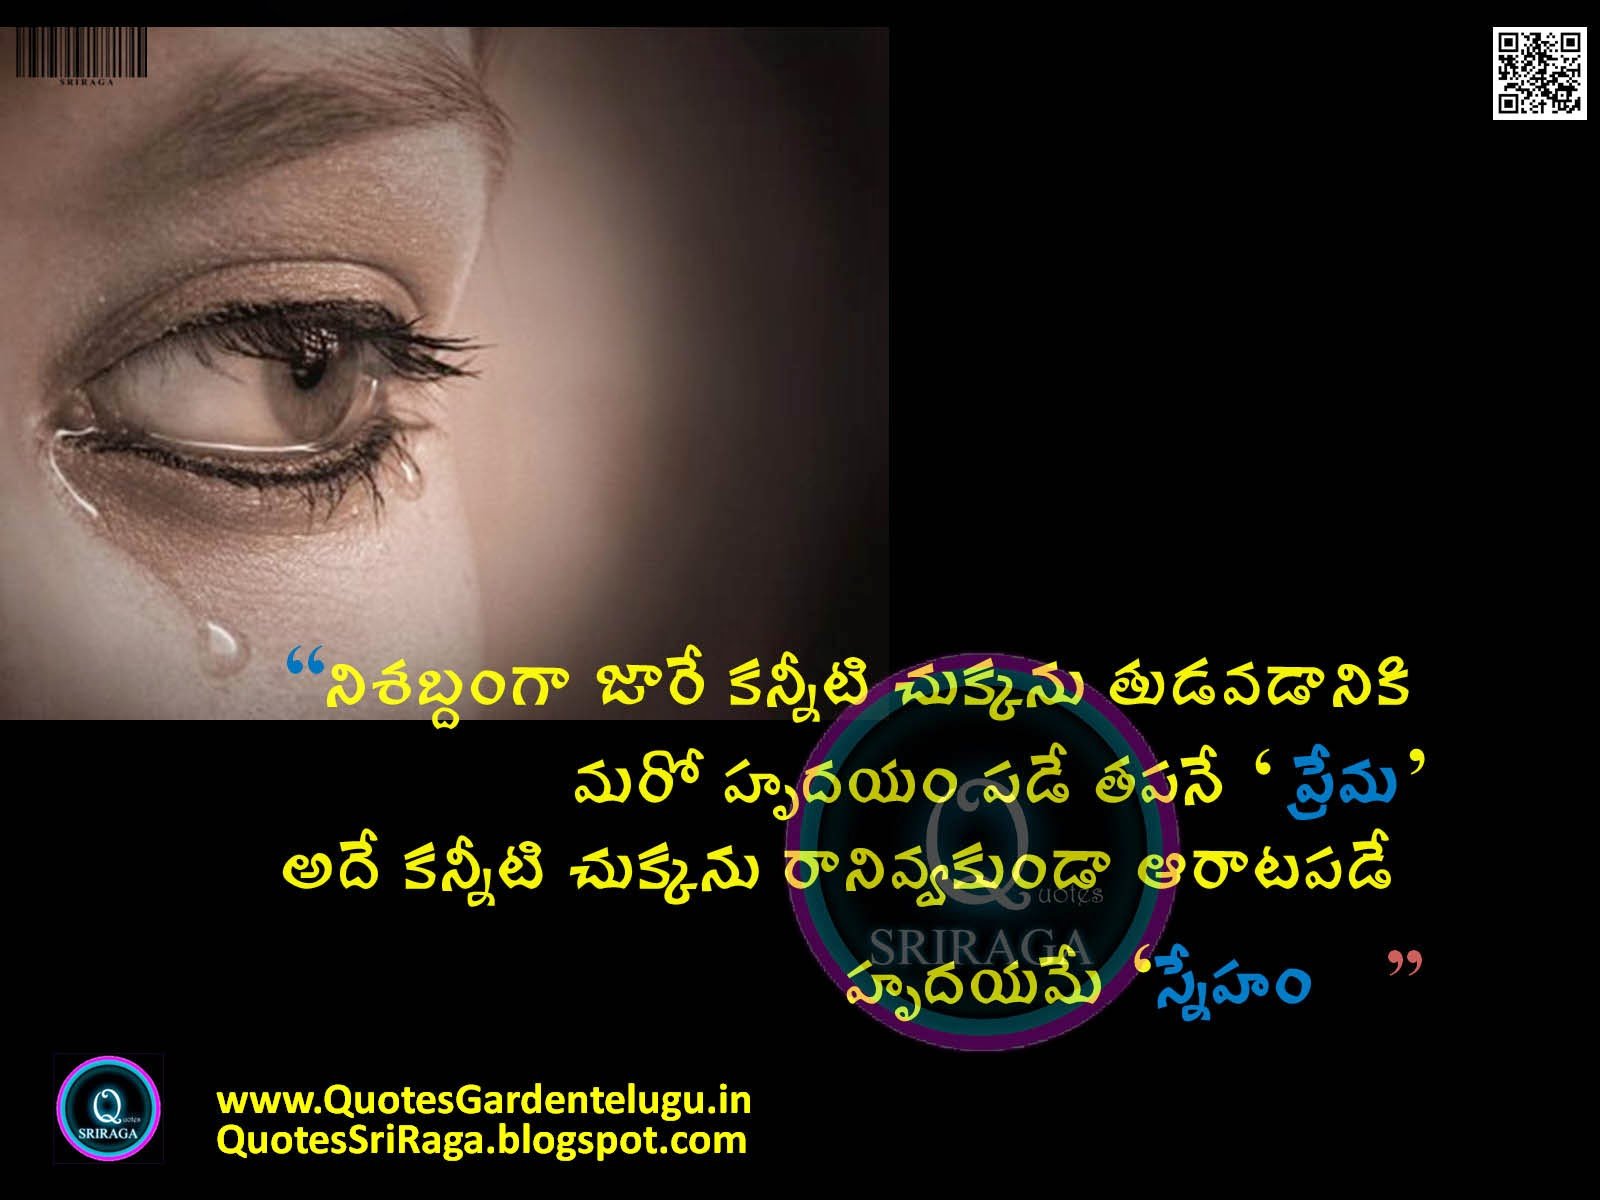 Emotional Images With Quotes In Telugu  Images HD Download